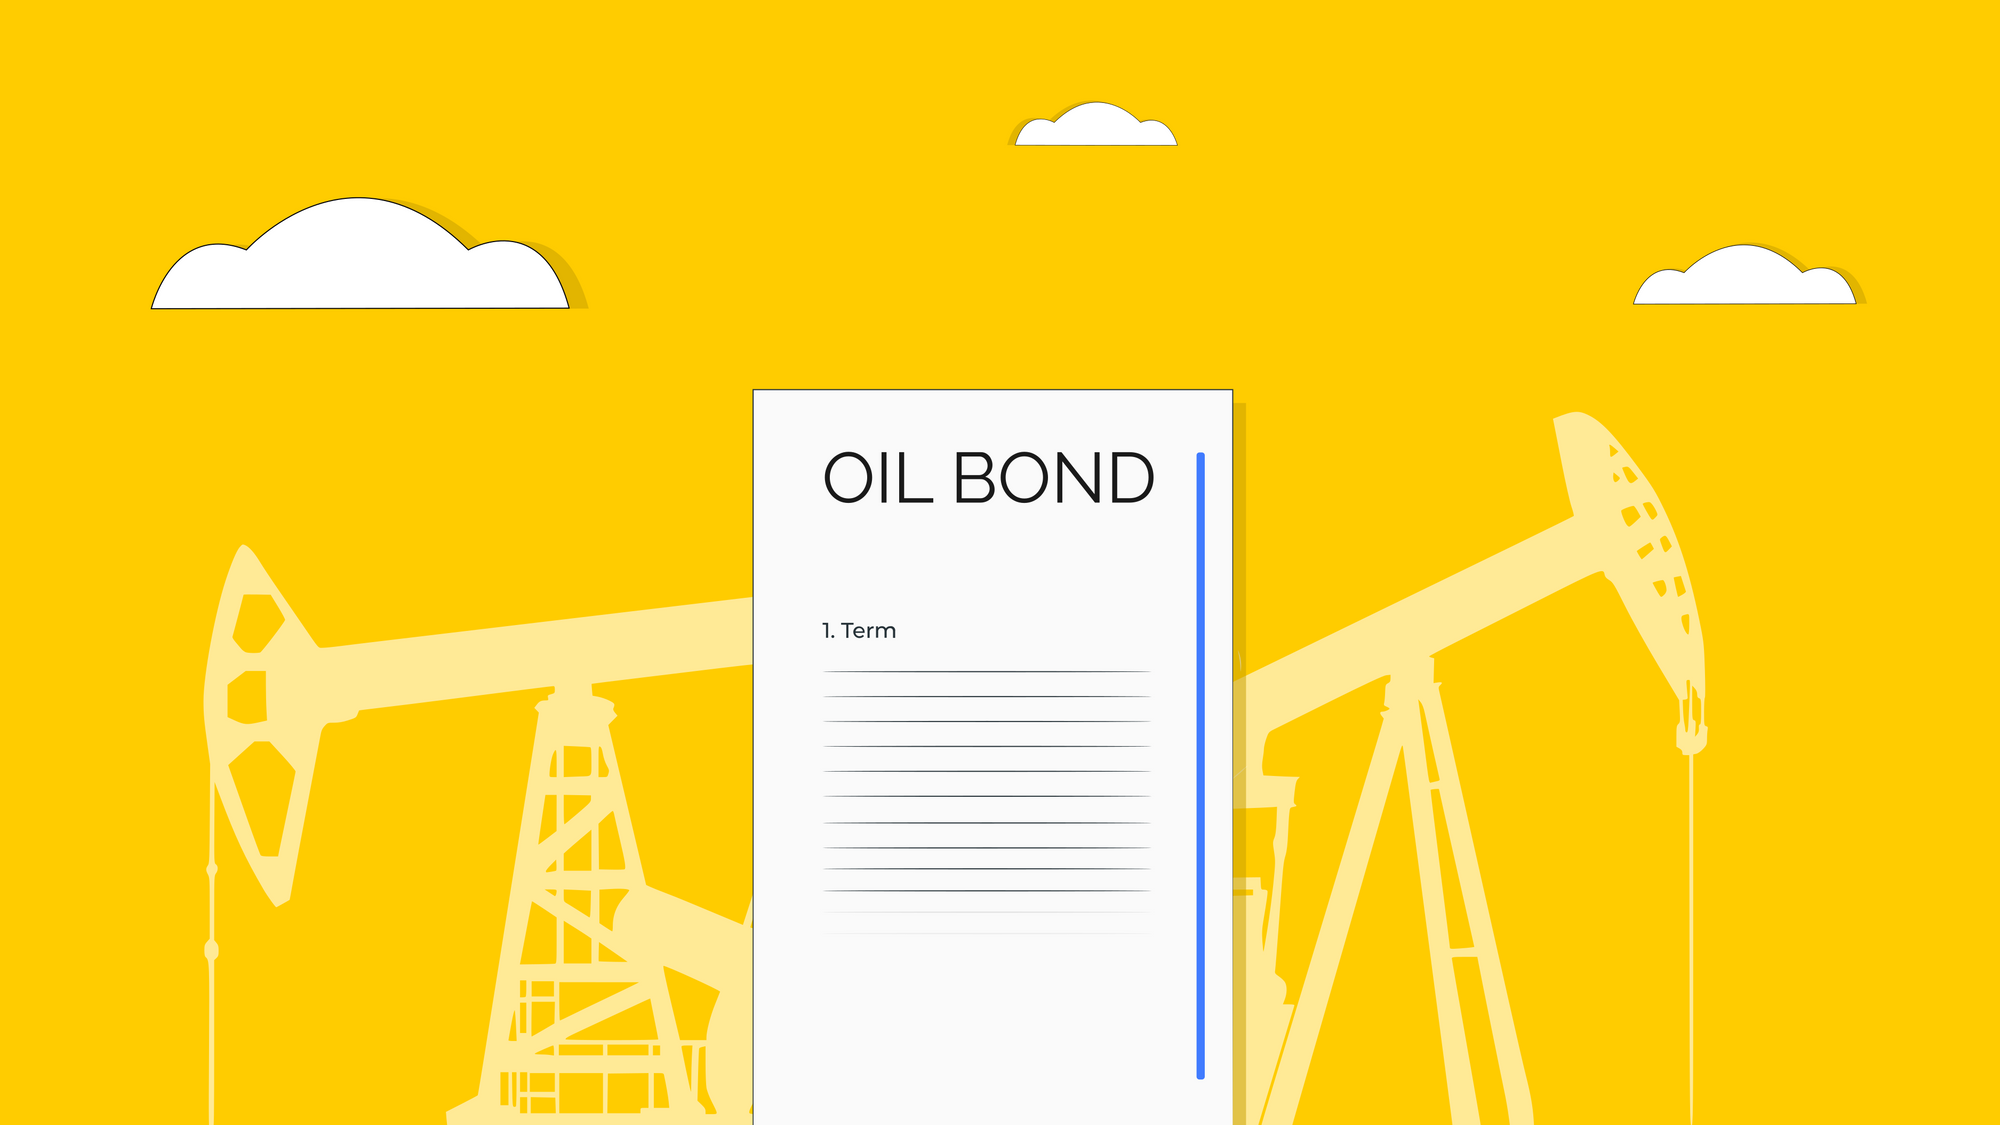 Are oil bonds to blame for the high fuel prices?